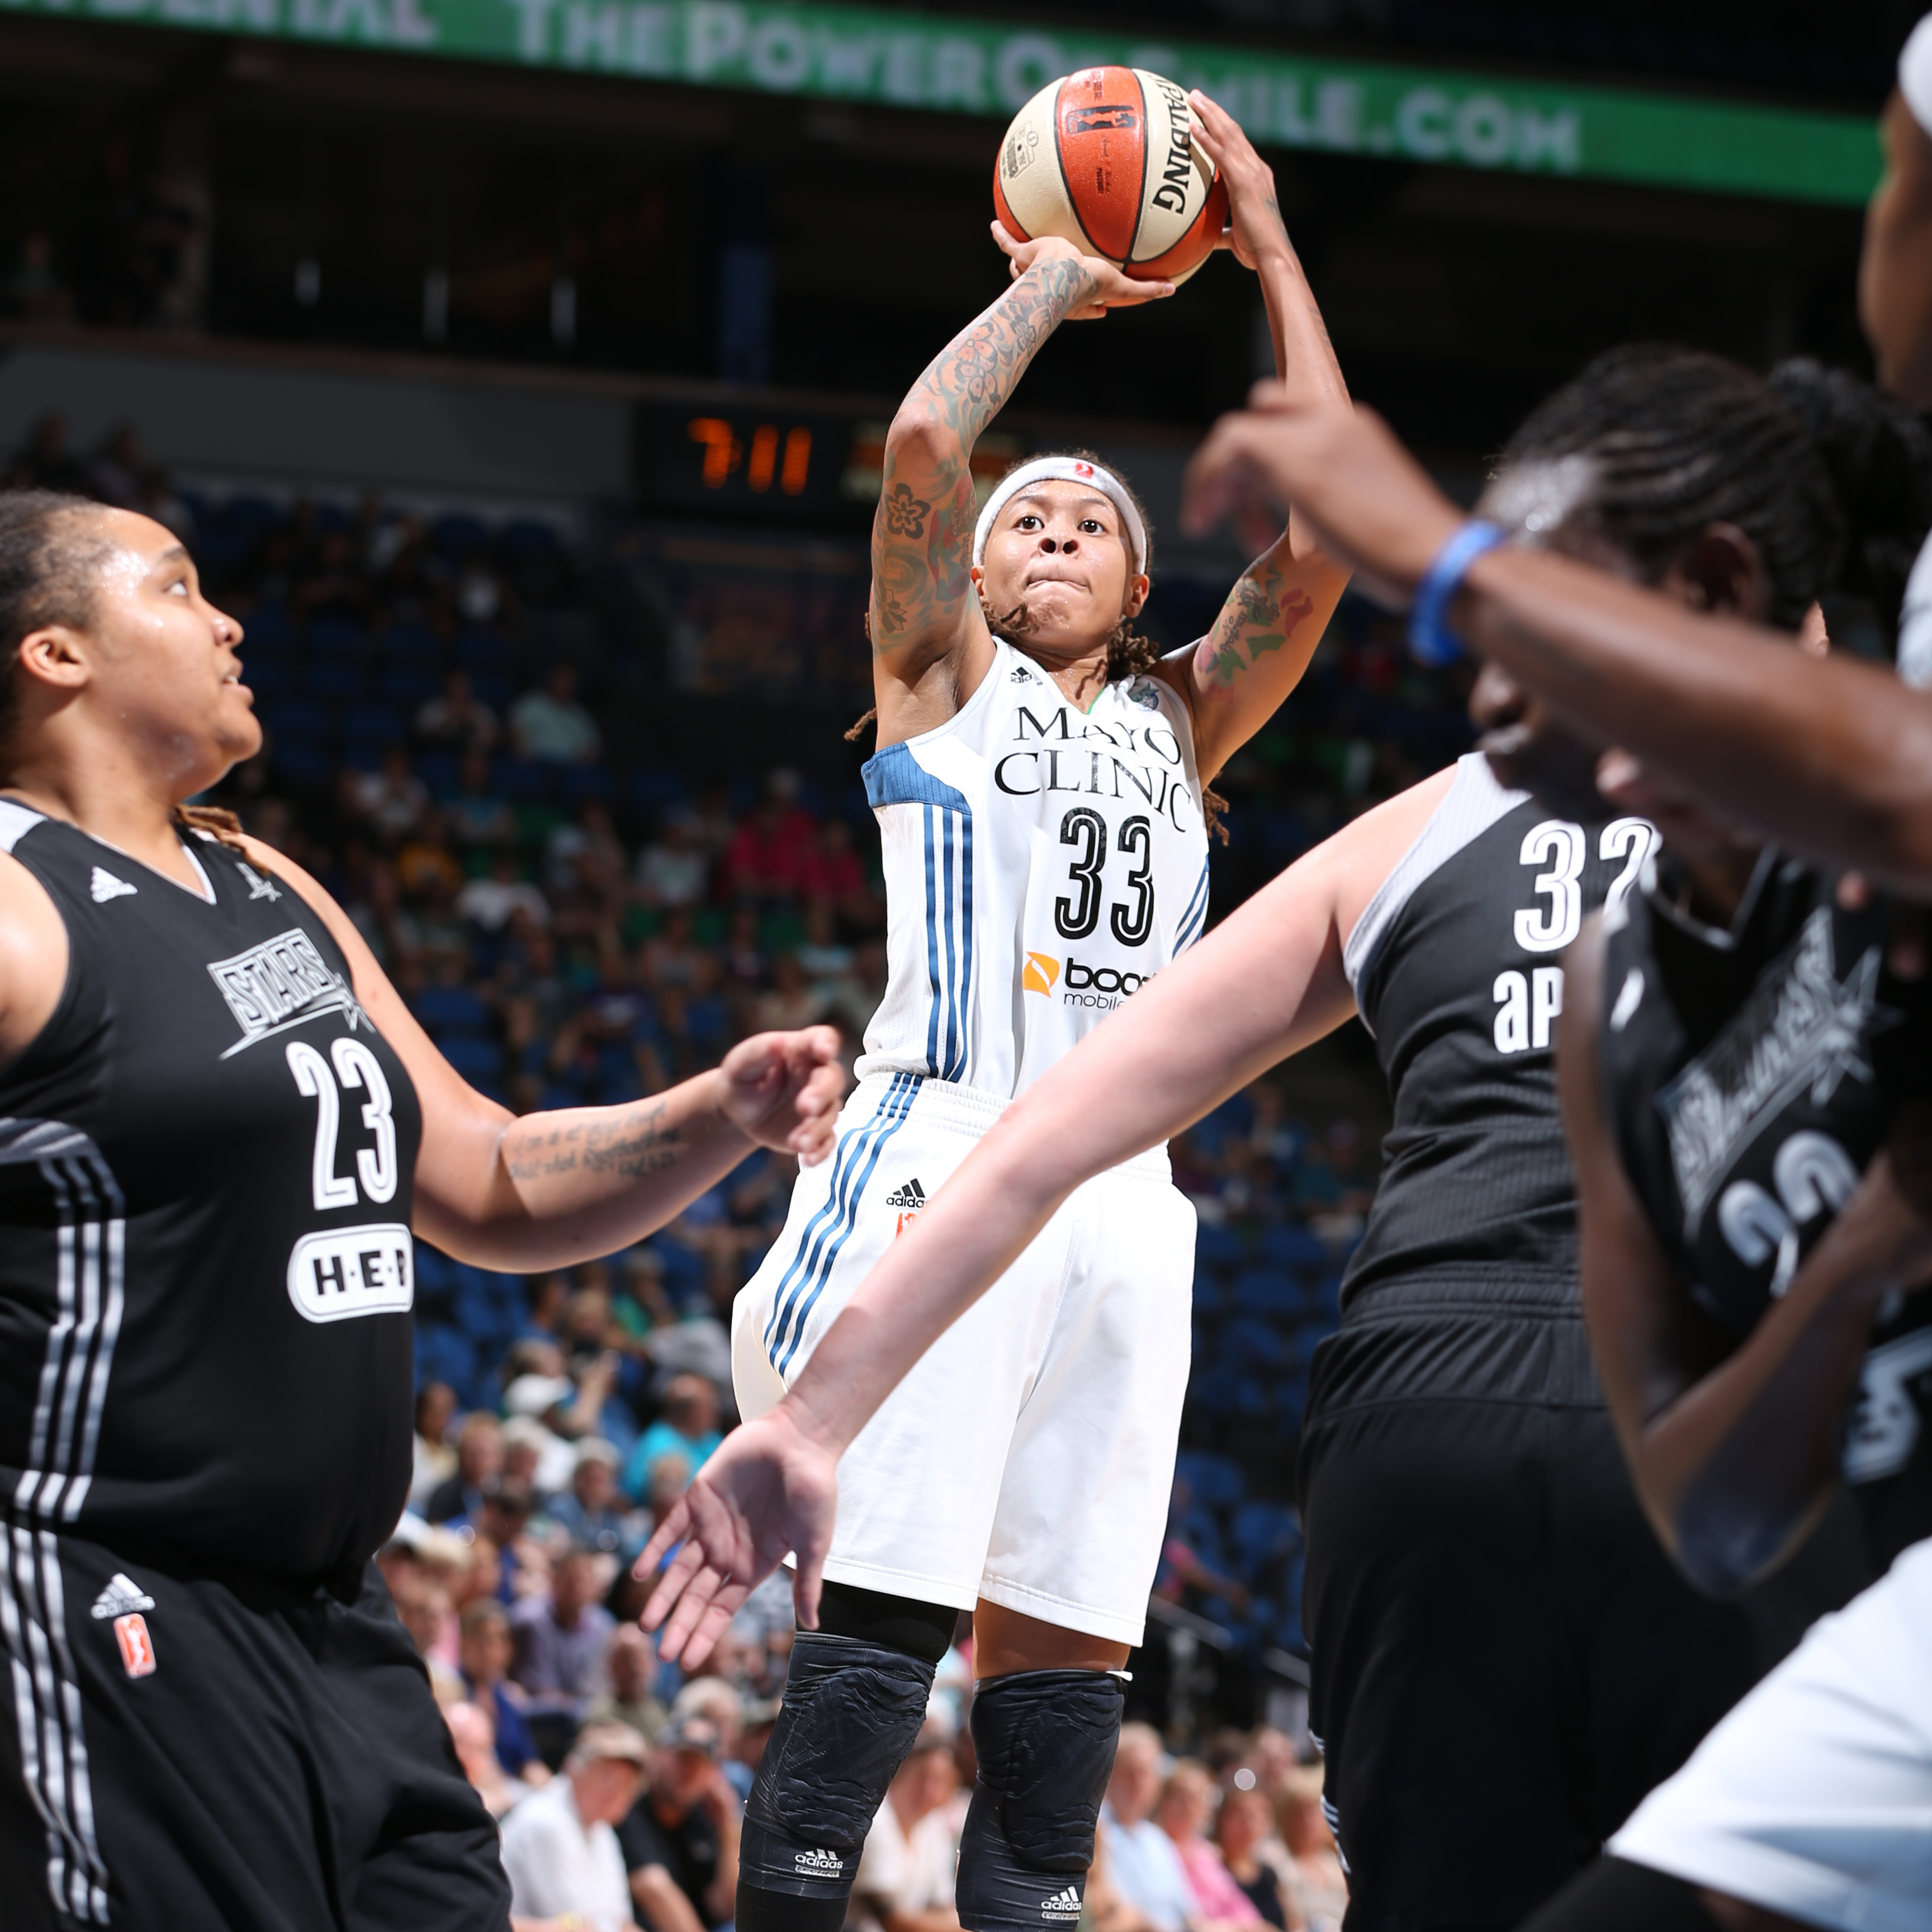 Lynx guard Seimone Augustus had another efficient night, scoring 12 points on 6-of-10 (60 percent) shooting in just over 19 minutes of playing time.